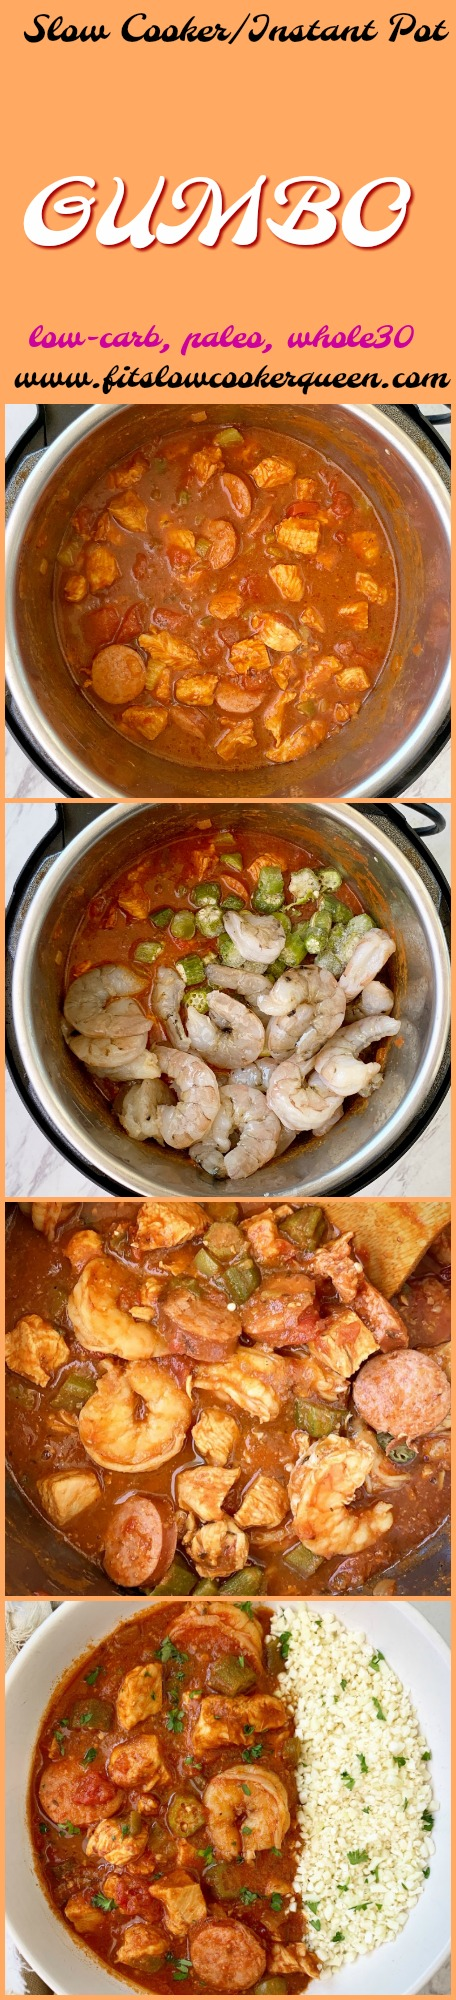 another pinterest pin for Slow Cooker_Instant Pot Gumbo (Low-Carb, Paleo, Whole30)